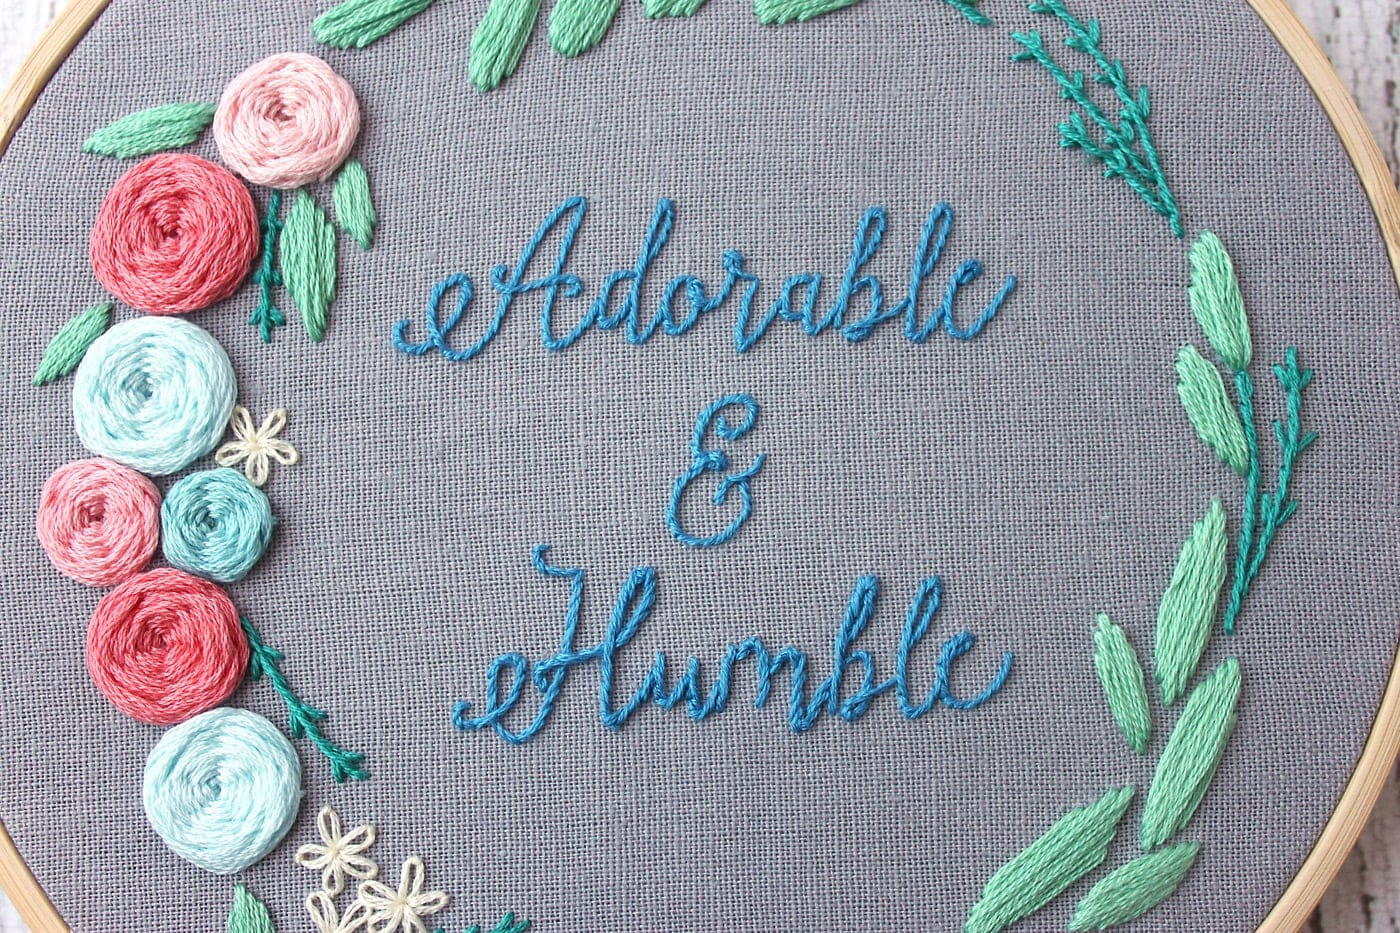 Quot Adorable And Humble Quot Free Floral Wreath Hand Embroidery